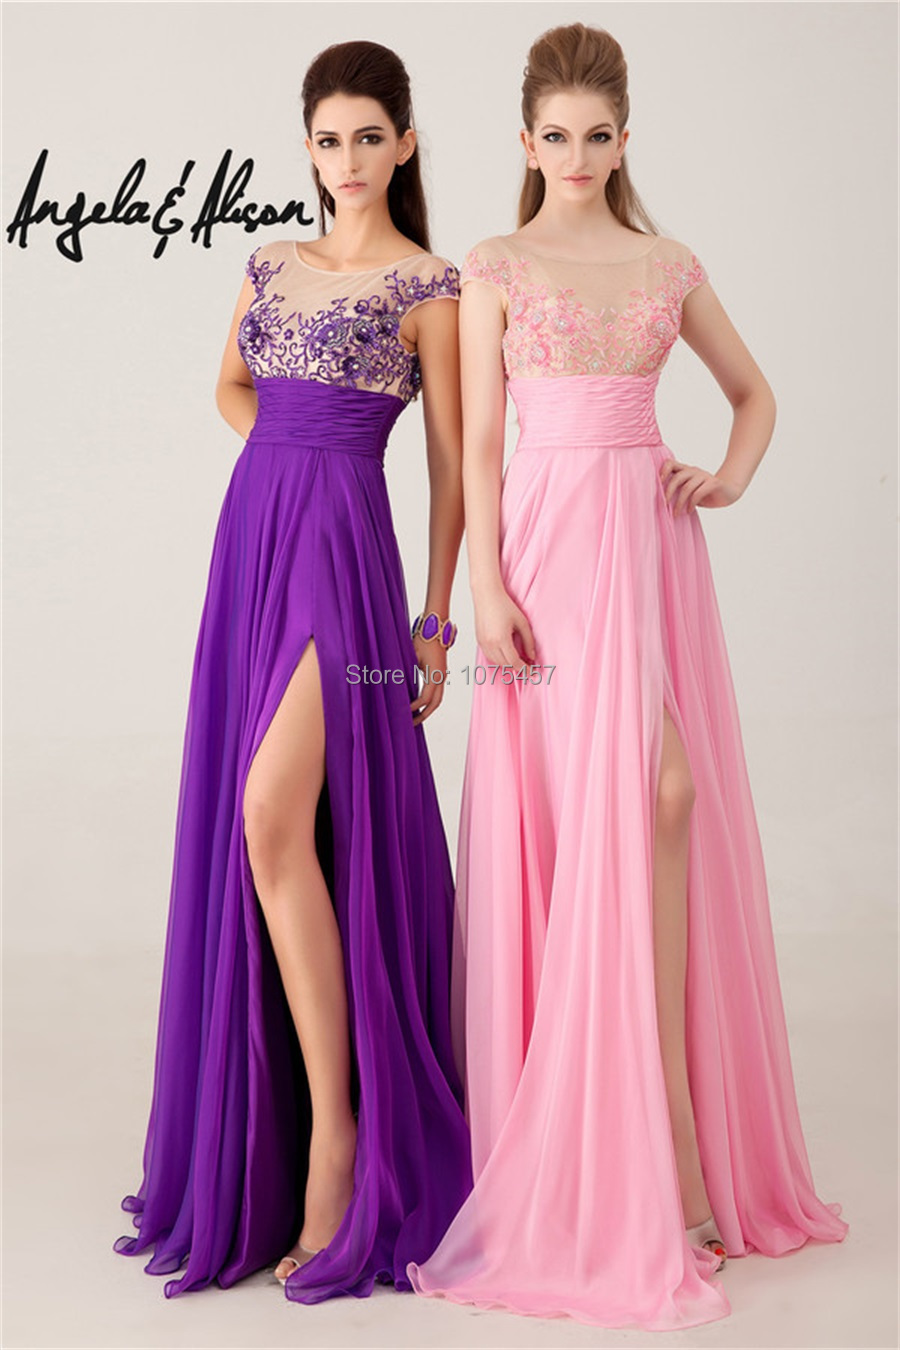 Free Shipping Embroided Sheer Neck Prom Dress High Slit Beaded 2014 ...